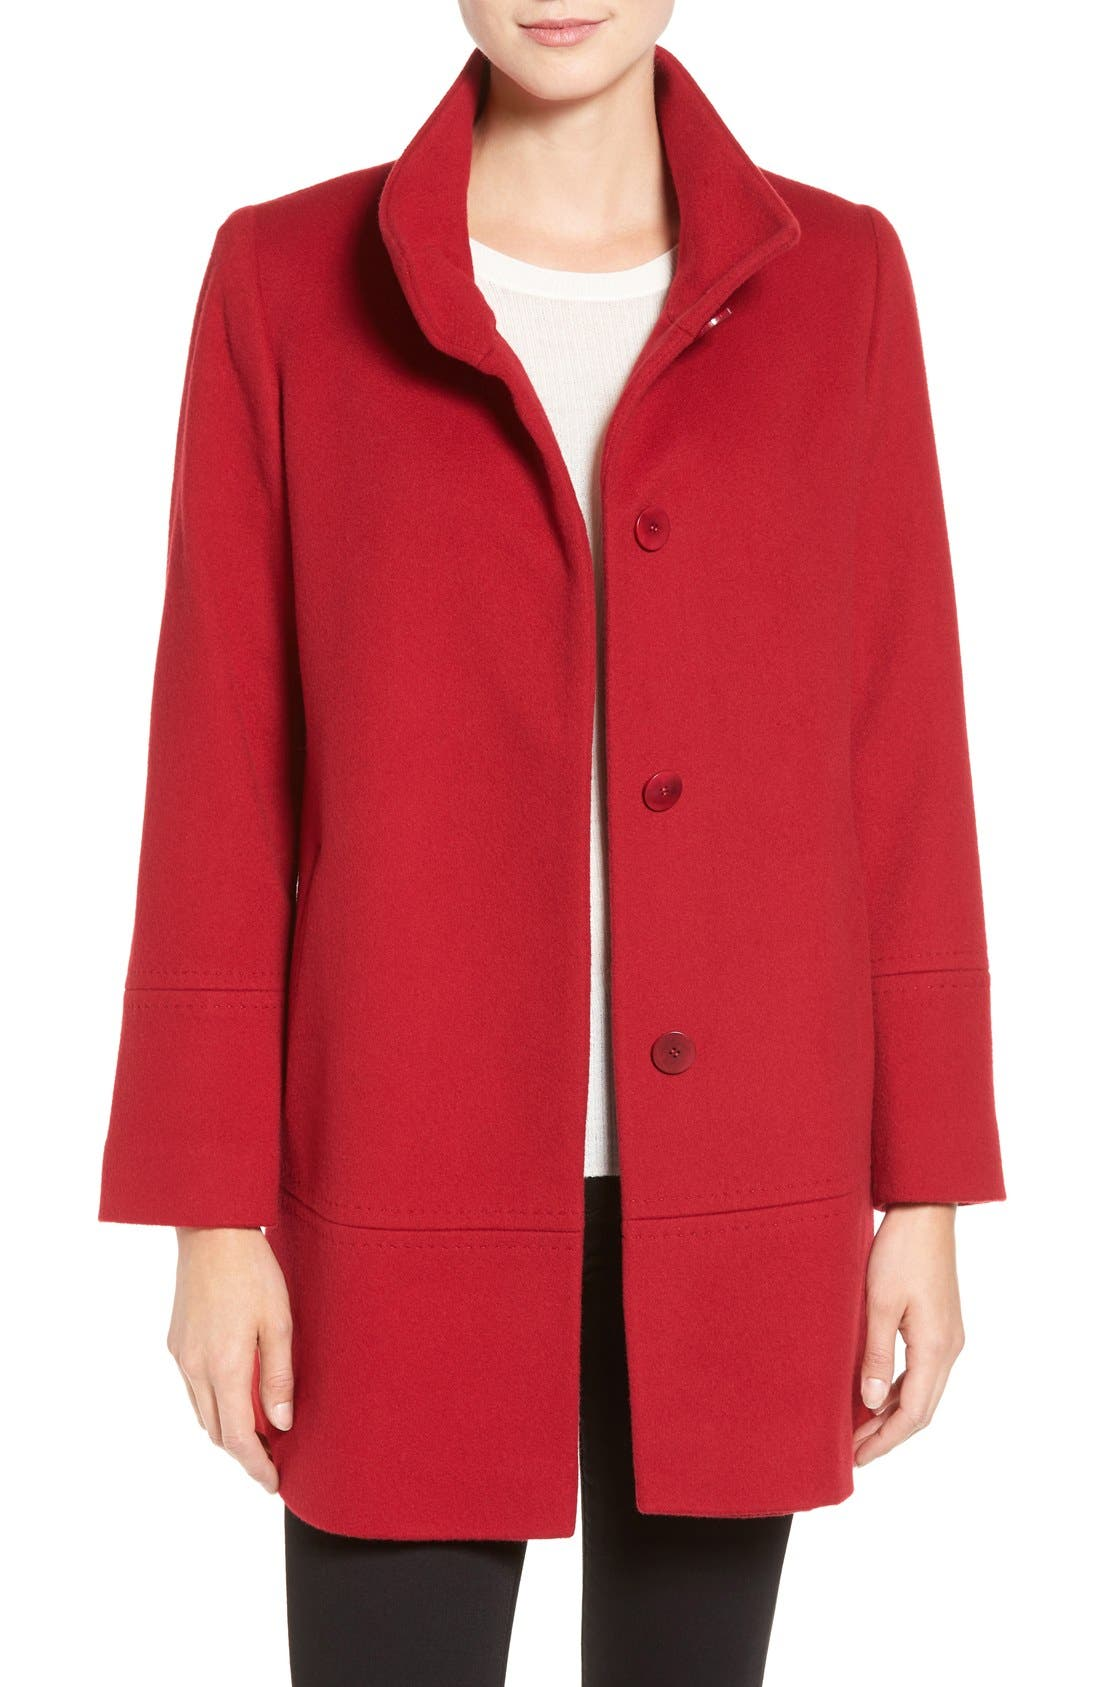 Main Image - Fleurette Loro Piana Wool Car Coat (Regular & Petite) (Nordstrom Exclusive)